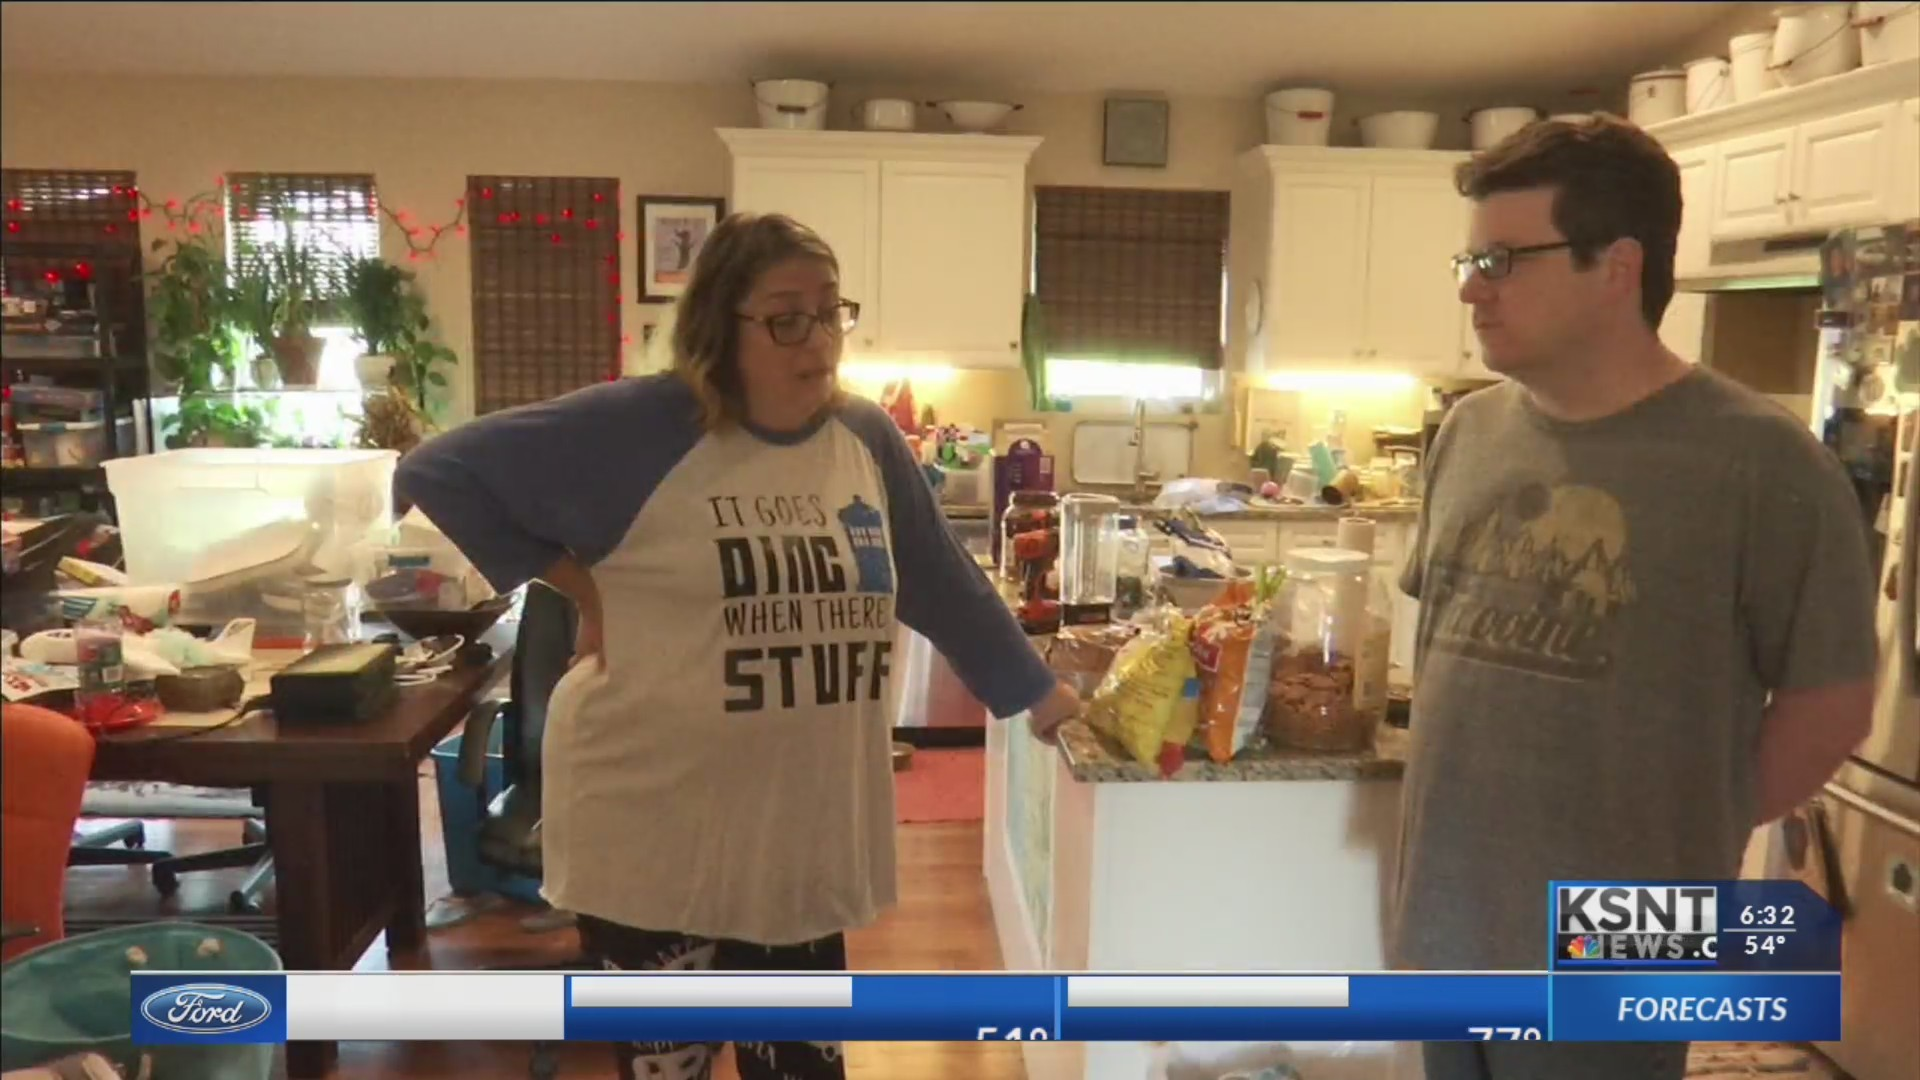 Burlington couple worried after repeated flooding in neighborhood